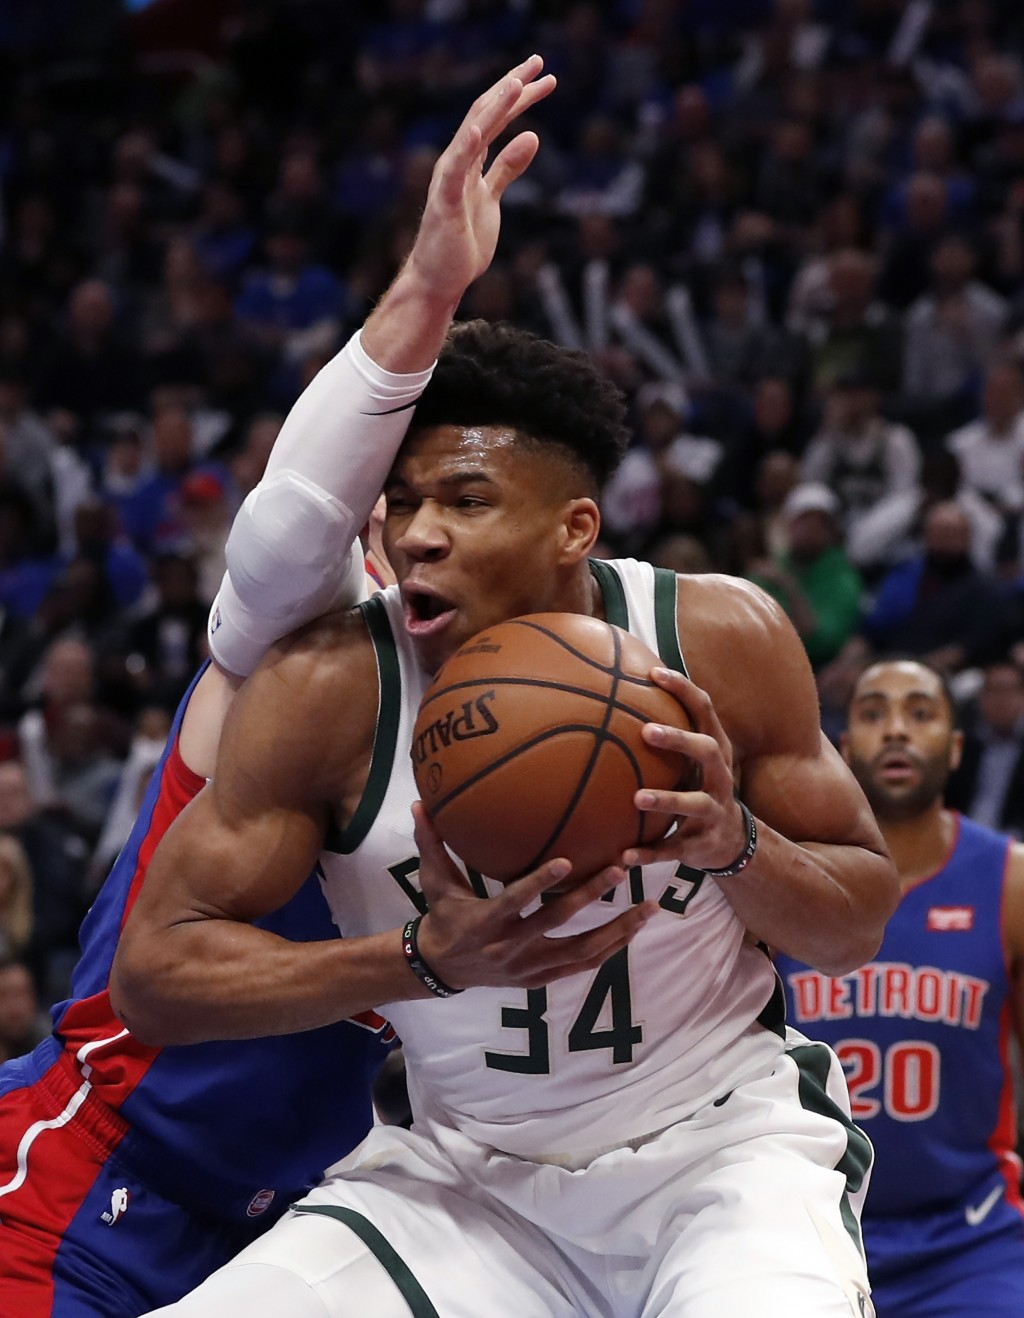 Milwaukee Bucks forward Giannis Antetokounmpo (34) is defended by Detroit Pistons forward Blake Griffin during the first half of Game 3 of a first-rou...